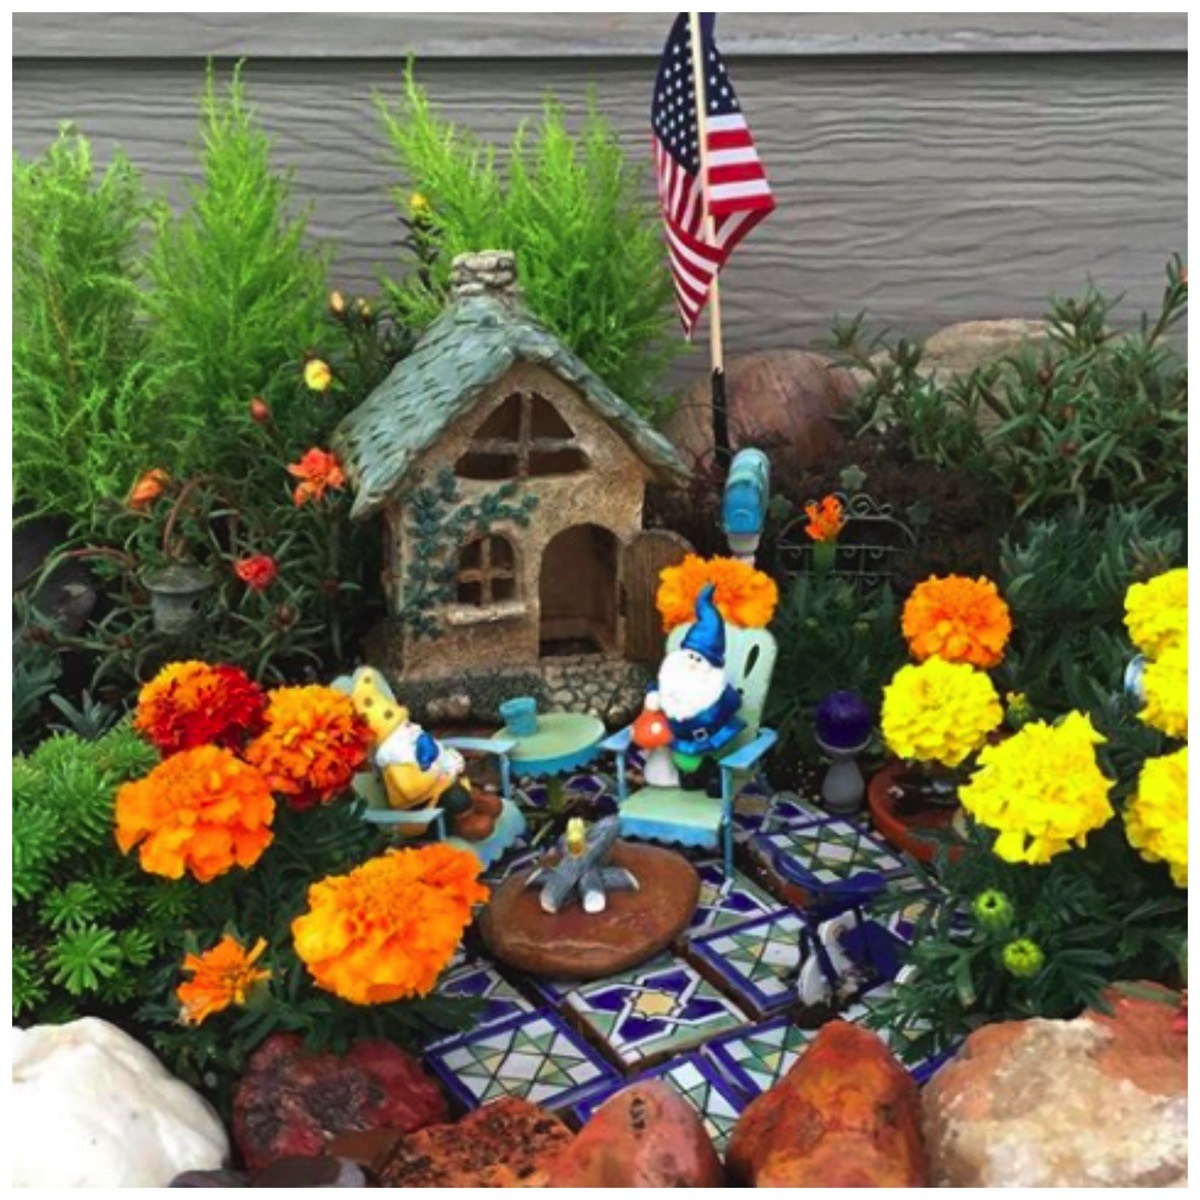 Gnome garden with home and recycled tile